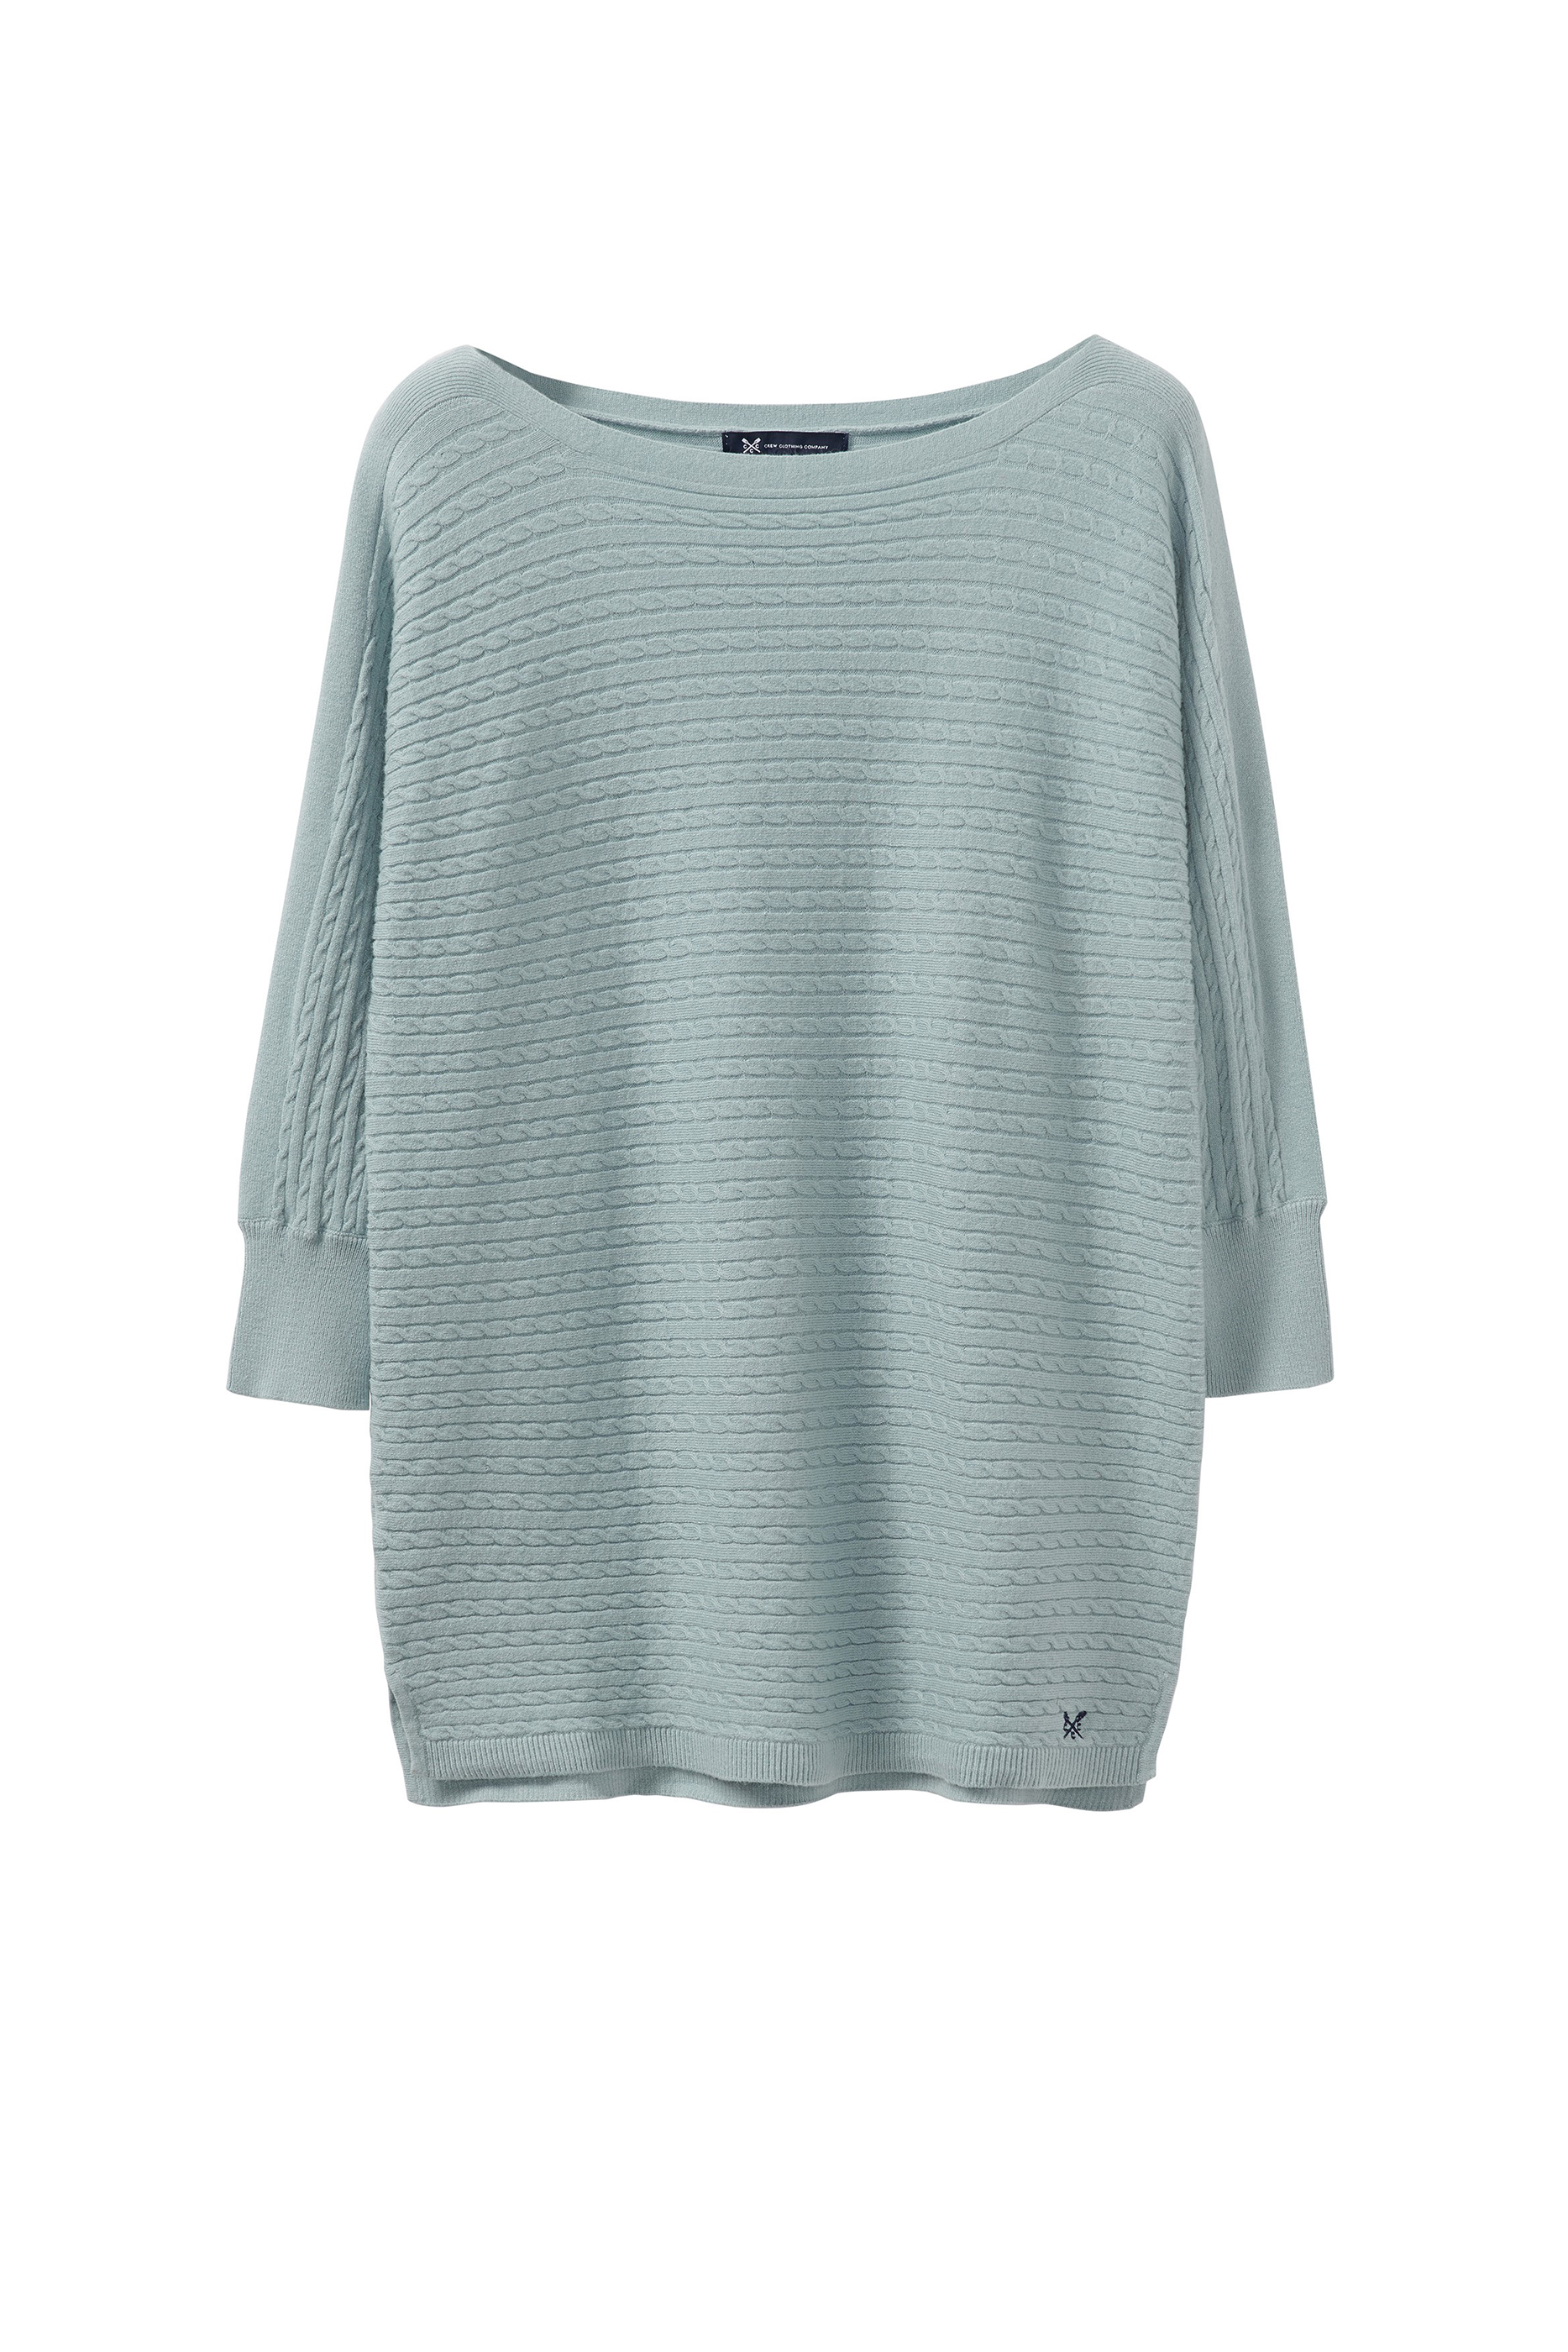 New-Crew-Clothing-Womens-Cable-Batwing-Jumper-in